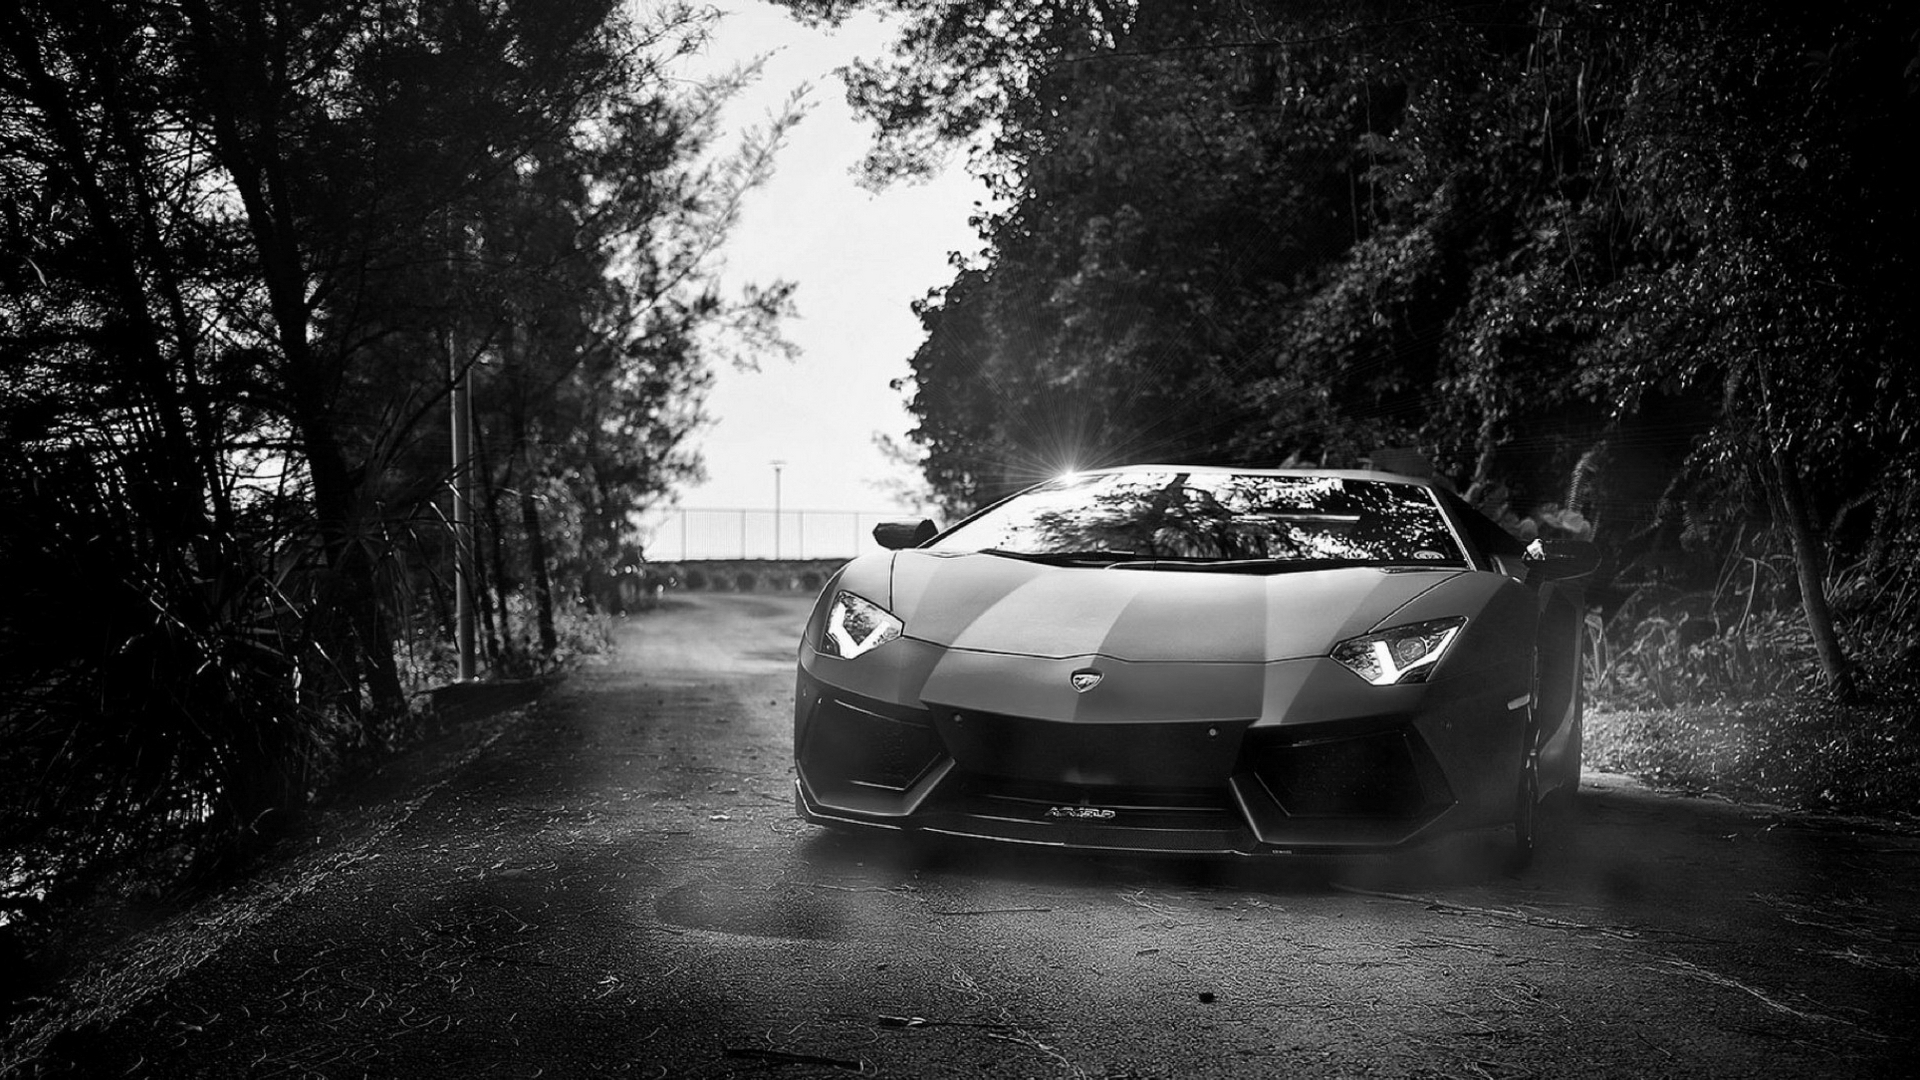 Lamborghini Aventador Wallpaper 1920x1080 New Upcoming Cars 2019 2020